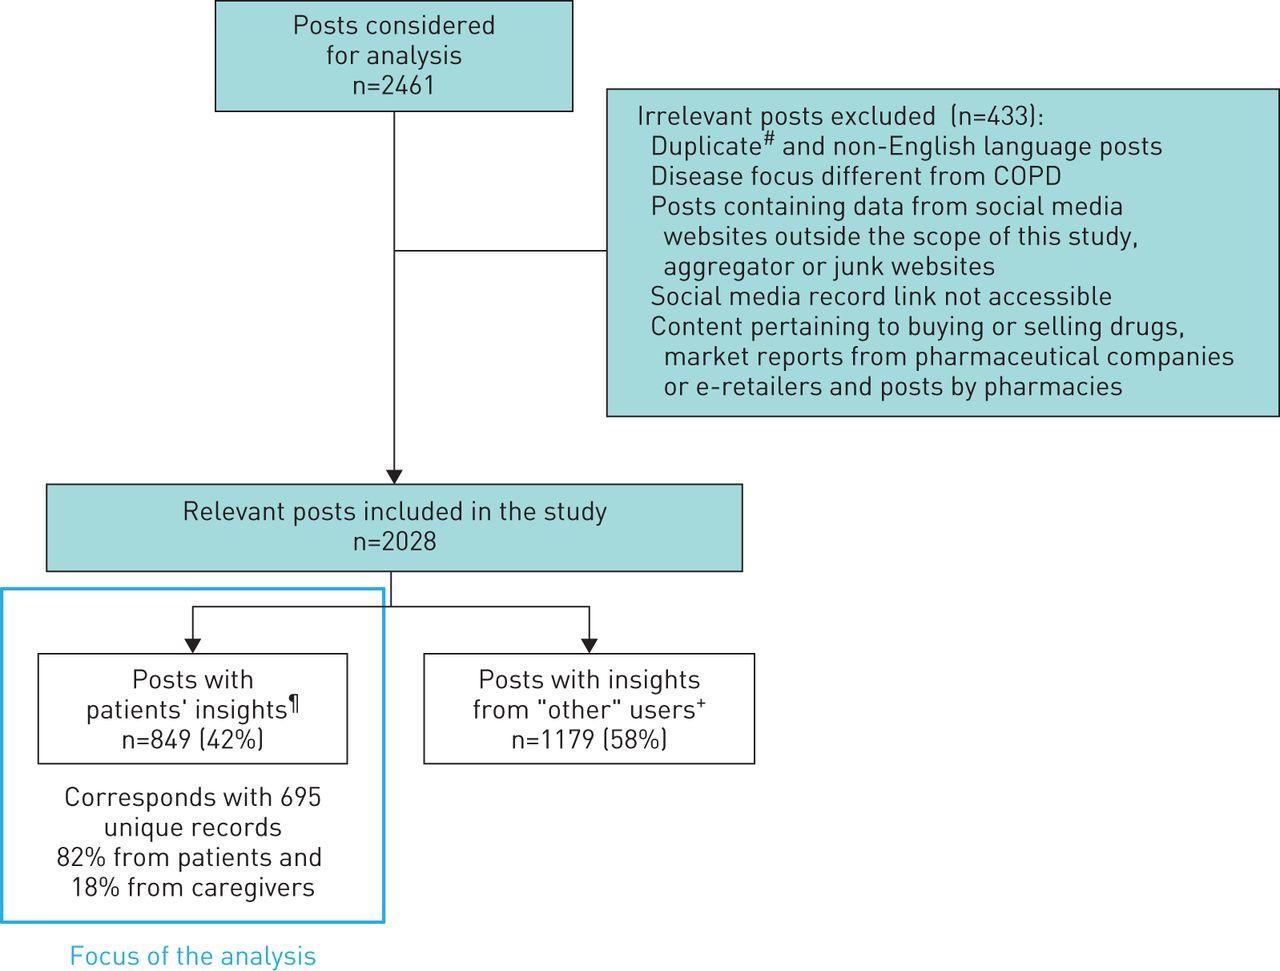 Patients' perspectives on COPD: findings from a social media